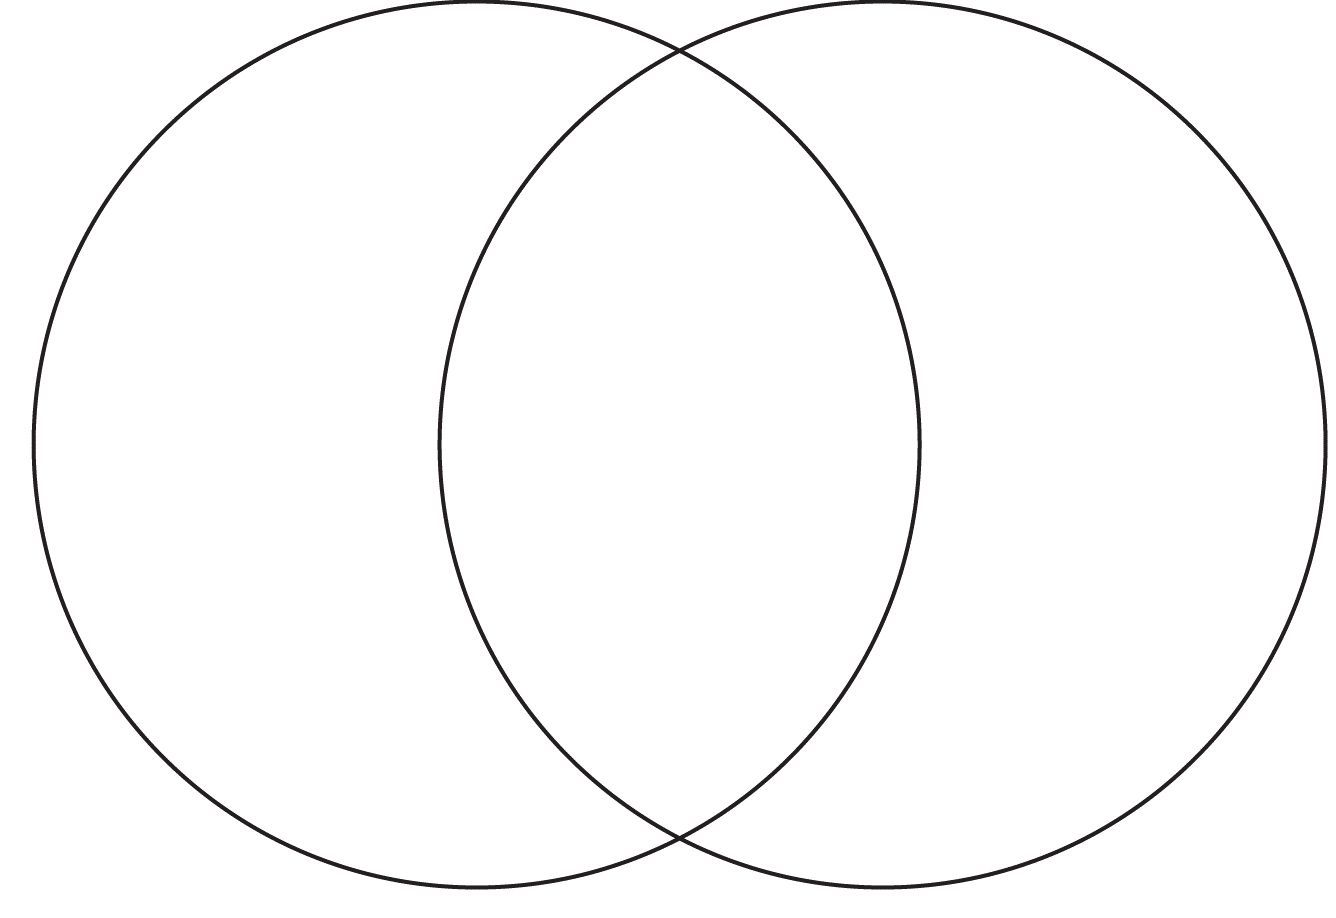 Trust image with printable venn diagram